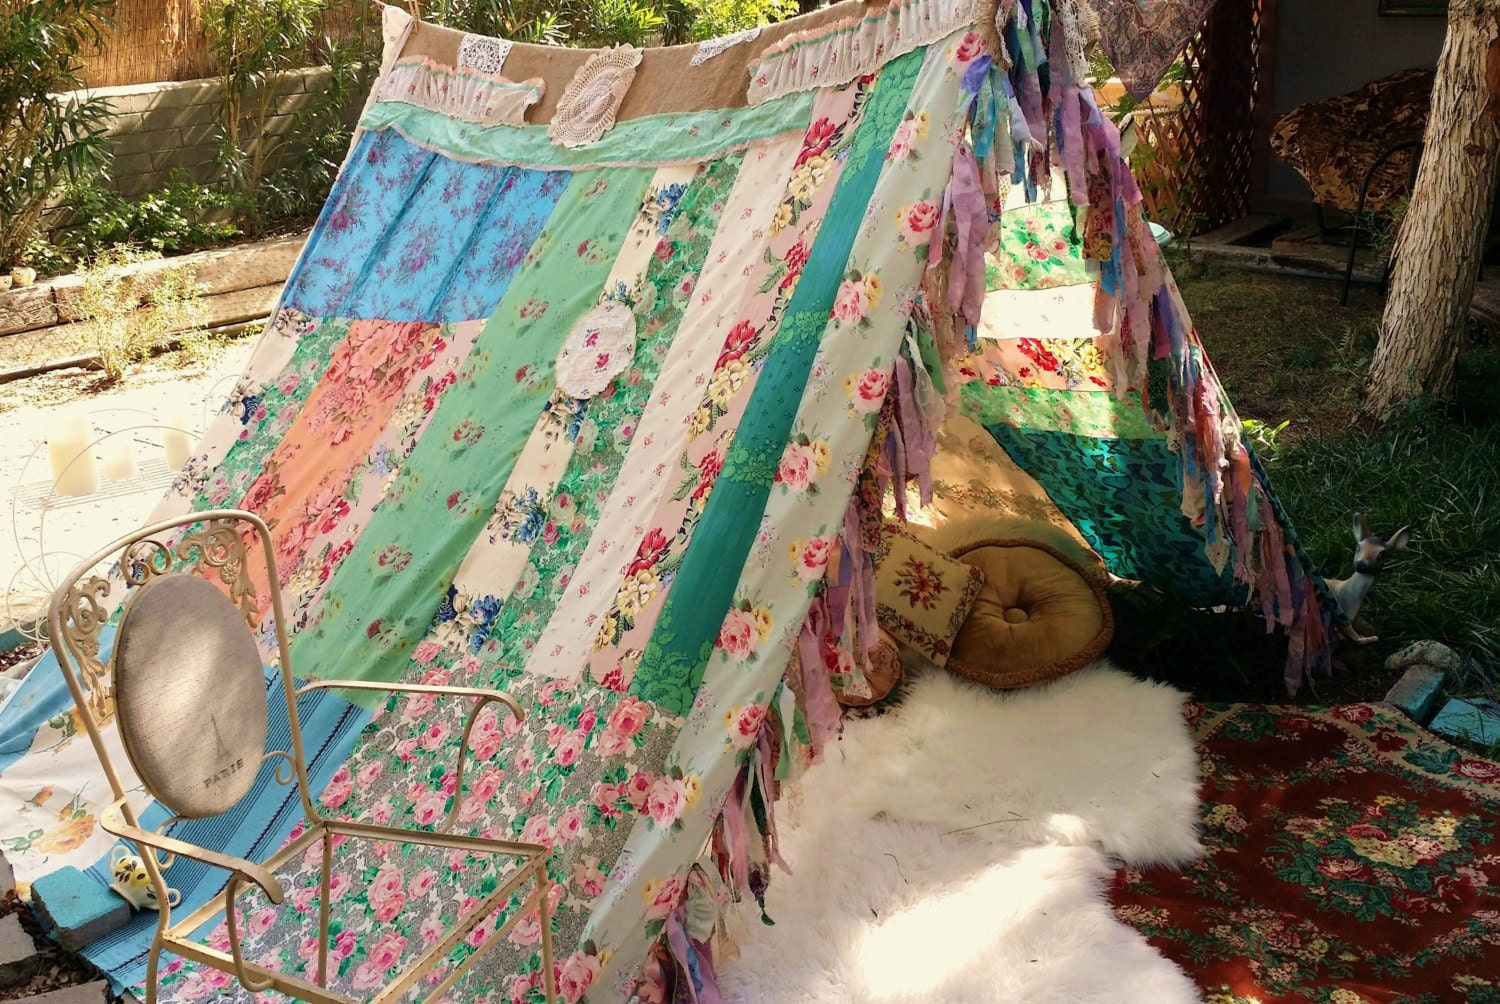 Gypsy shabby chic curtains -  Shabby Chic Gypsy Hippie Patchwork Bed Wedding Curtain Photo Prop Zoom